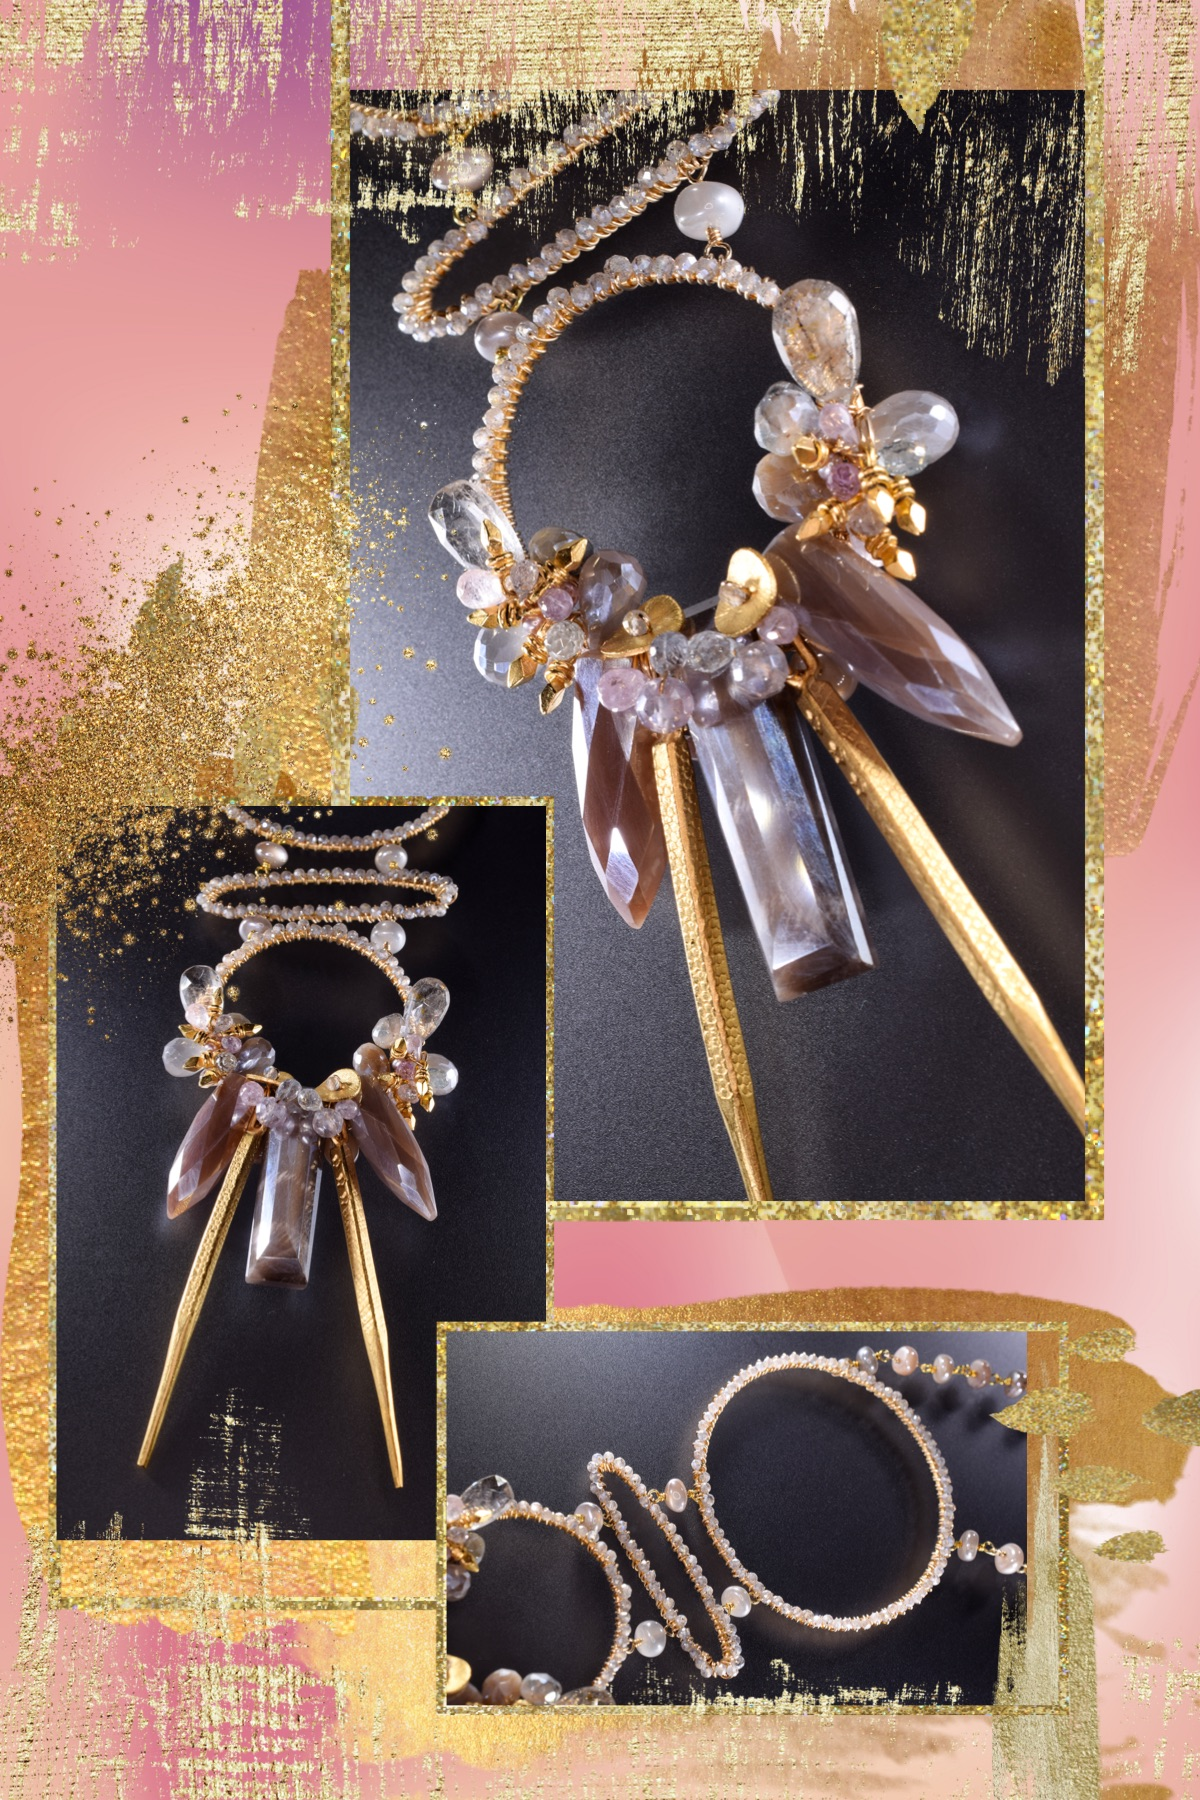 Femme Fatale Jewelry Collection lookbook